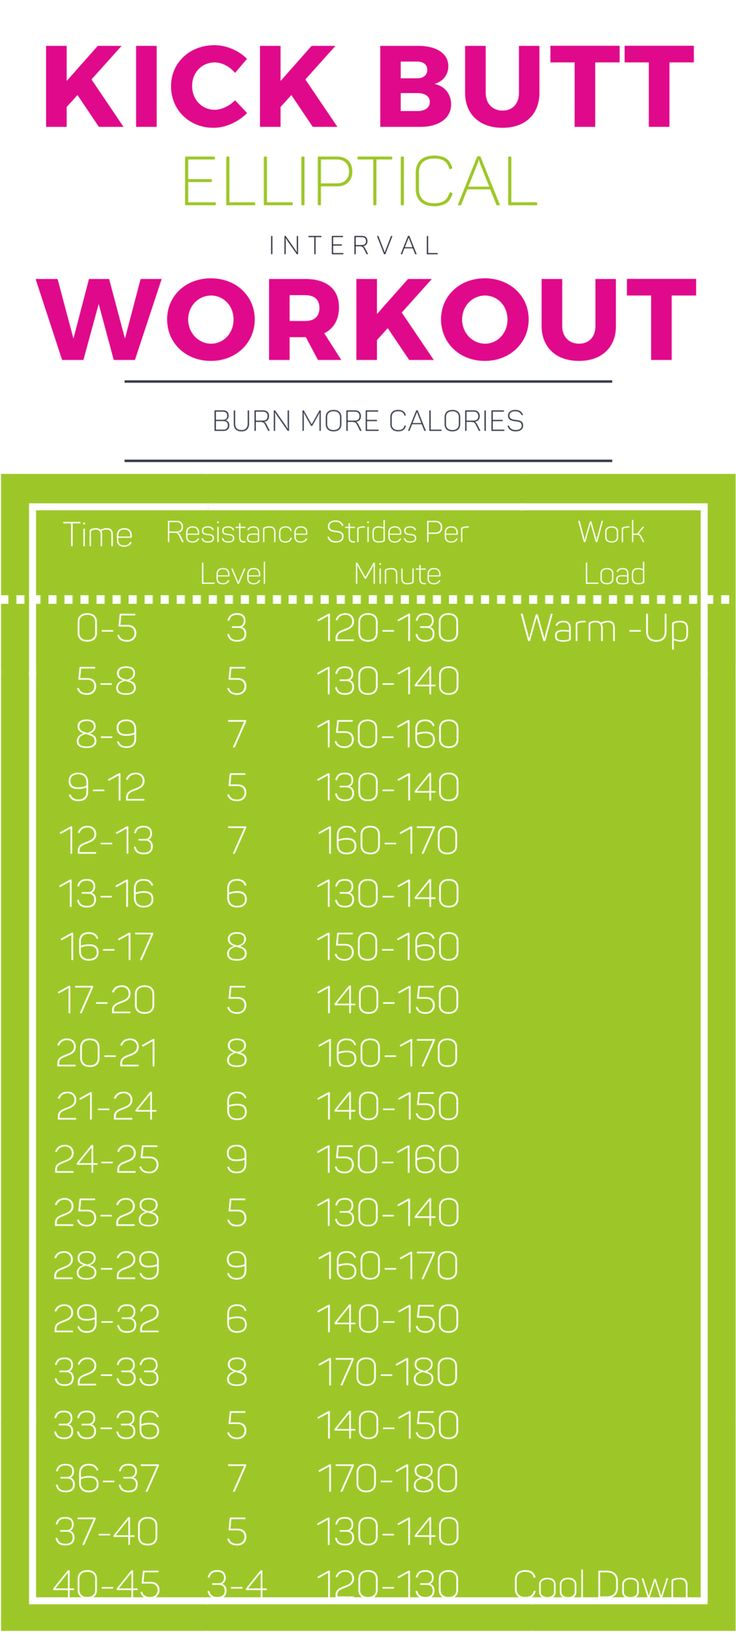 Try this Kick Butt Elliptical Interval Workout and burn more calories! Simply follow the chart below and, for each increment of time, use the given resistance and strides per minute listed to change your effort throughout the 45-minute time frame.